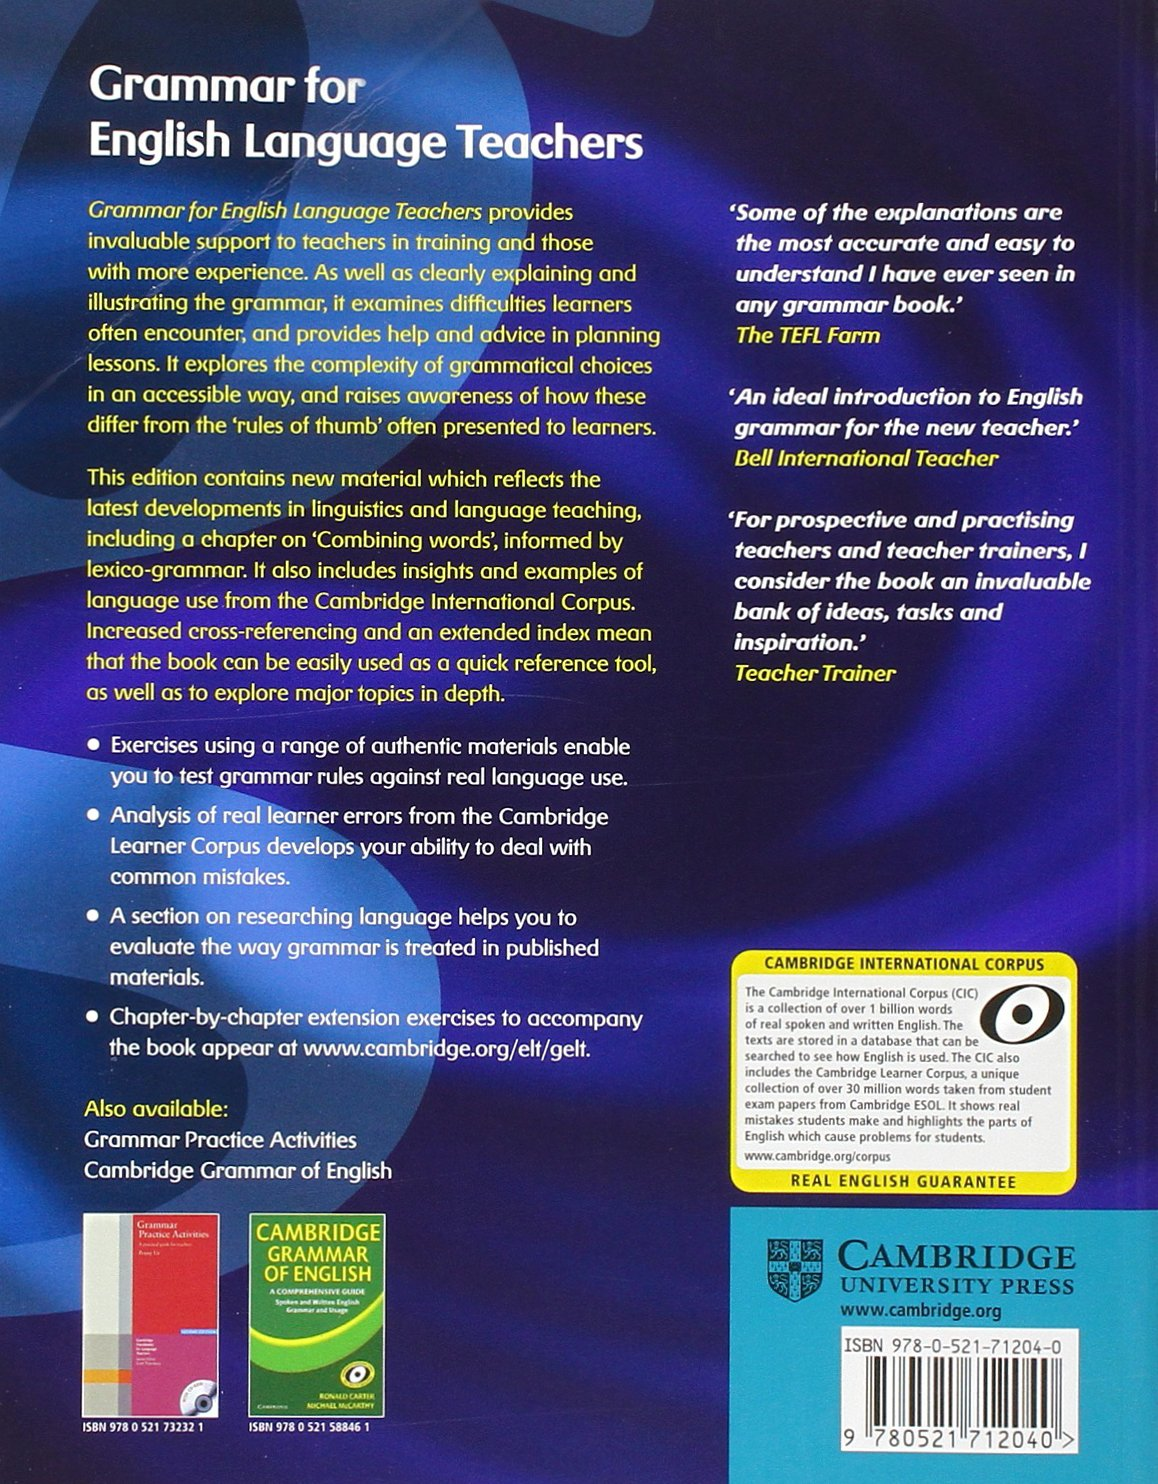 Grammar for English Language Teachers by Cambridge University Press